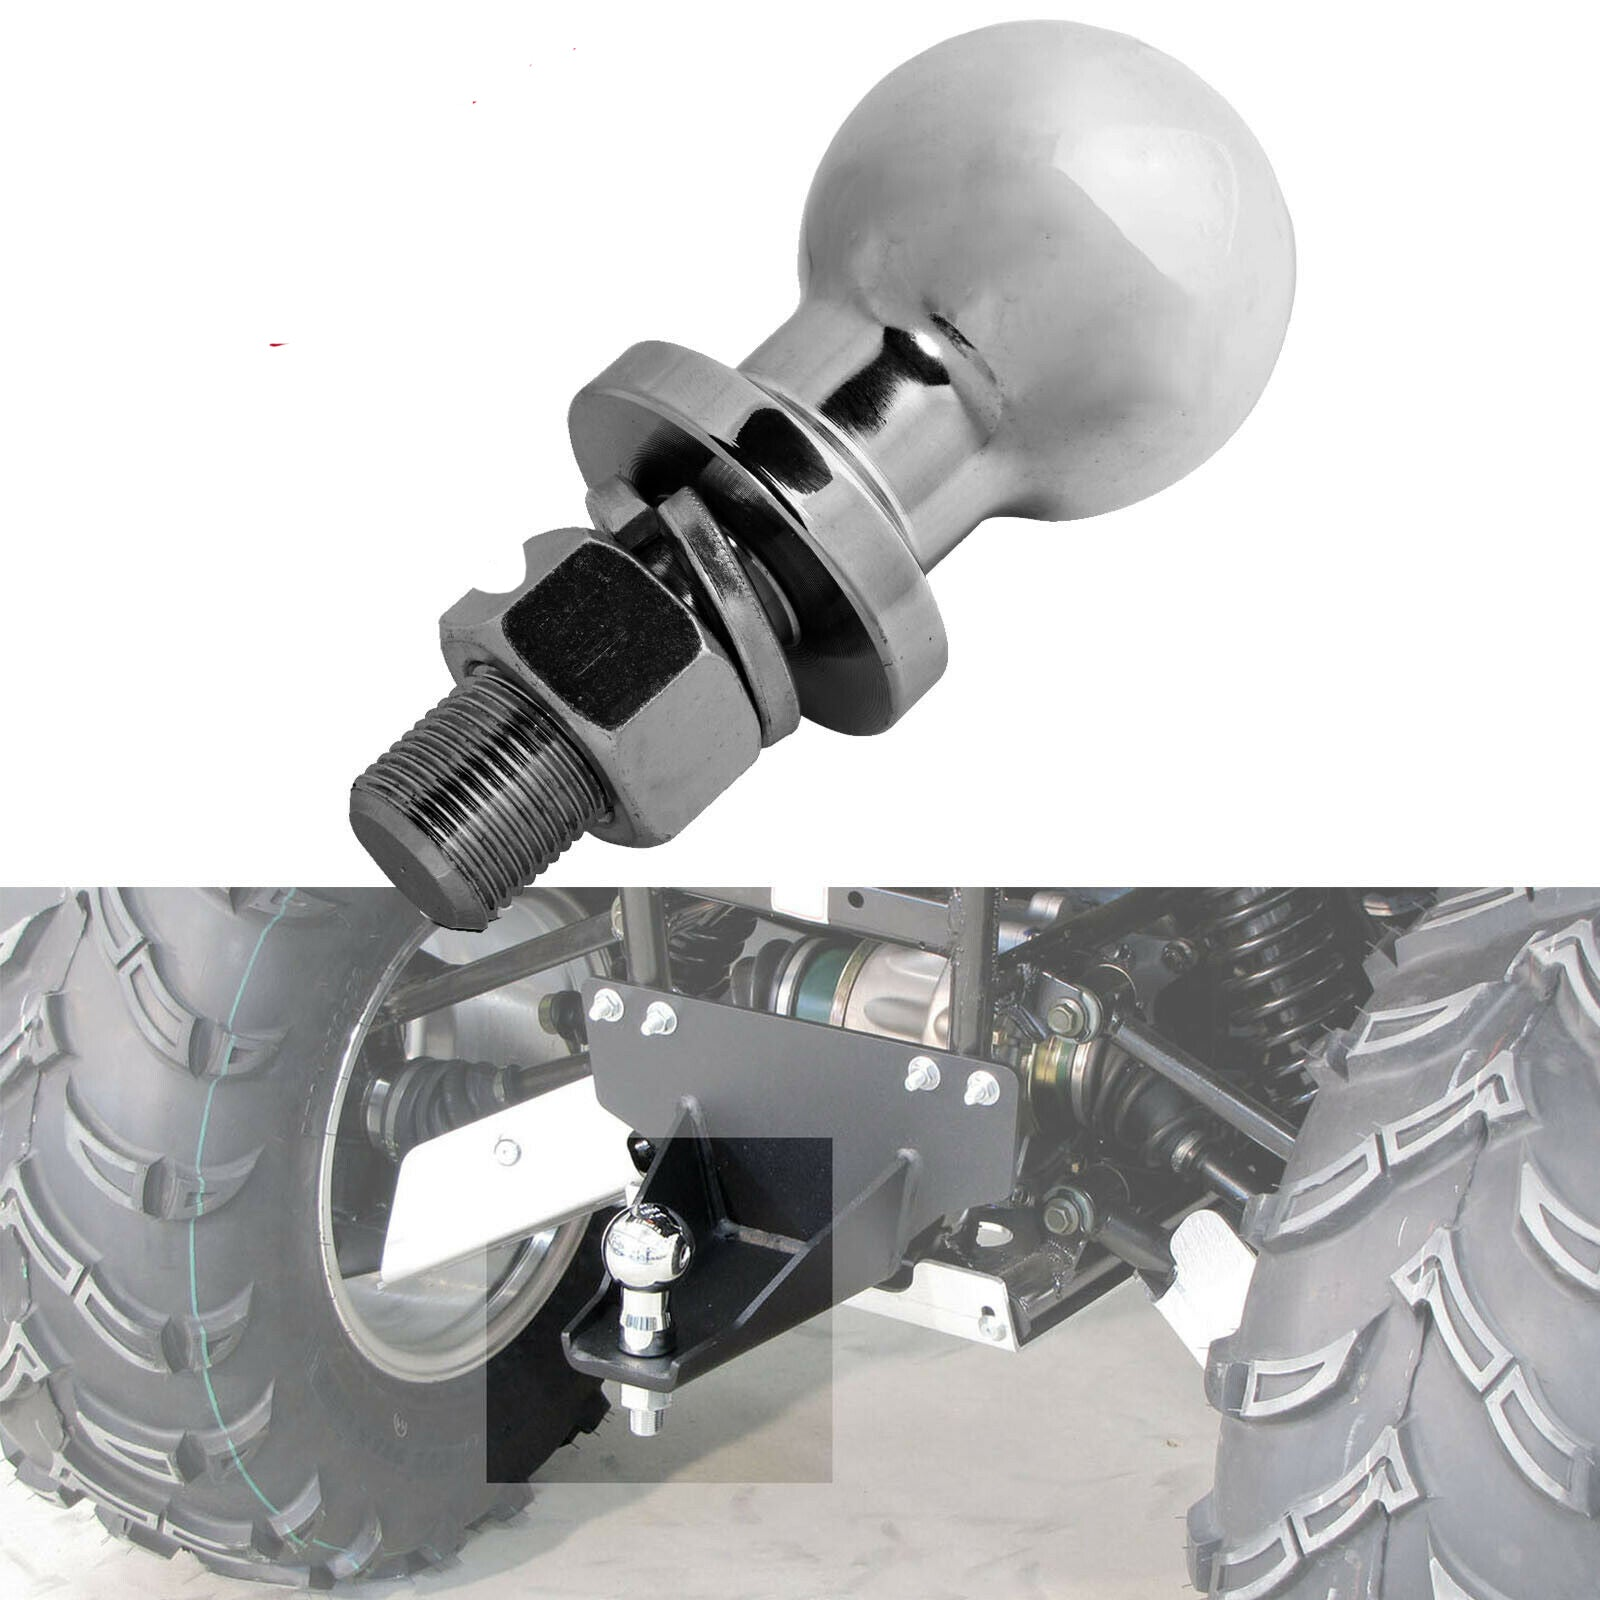 Tow Ball 50mm Heavy Duty Trailer Hitch Towball Chrome for Off-road Quad ATV